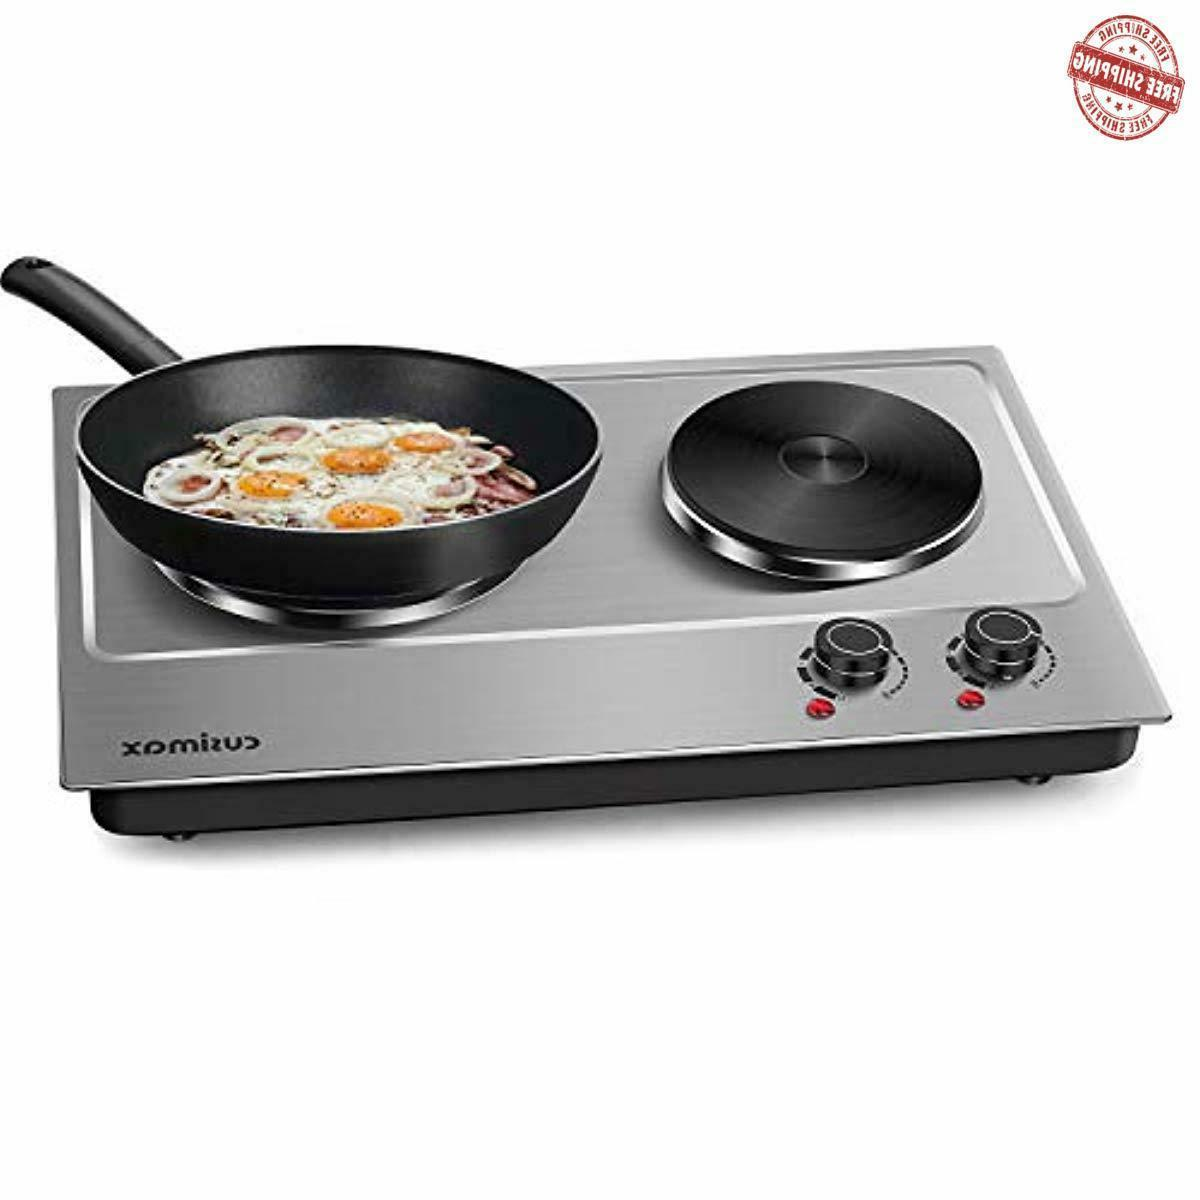 1800w double hot plate countertop burner portable